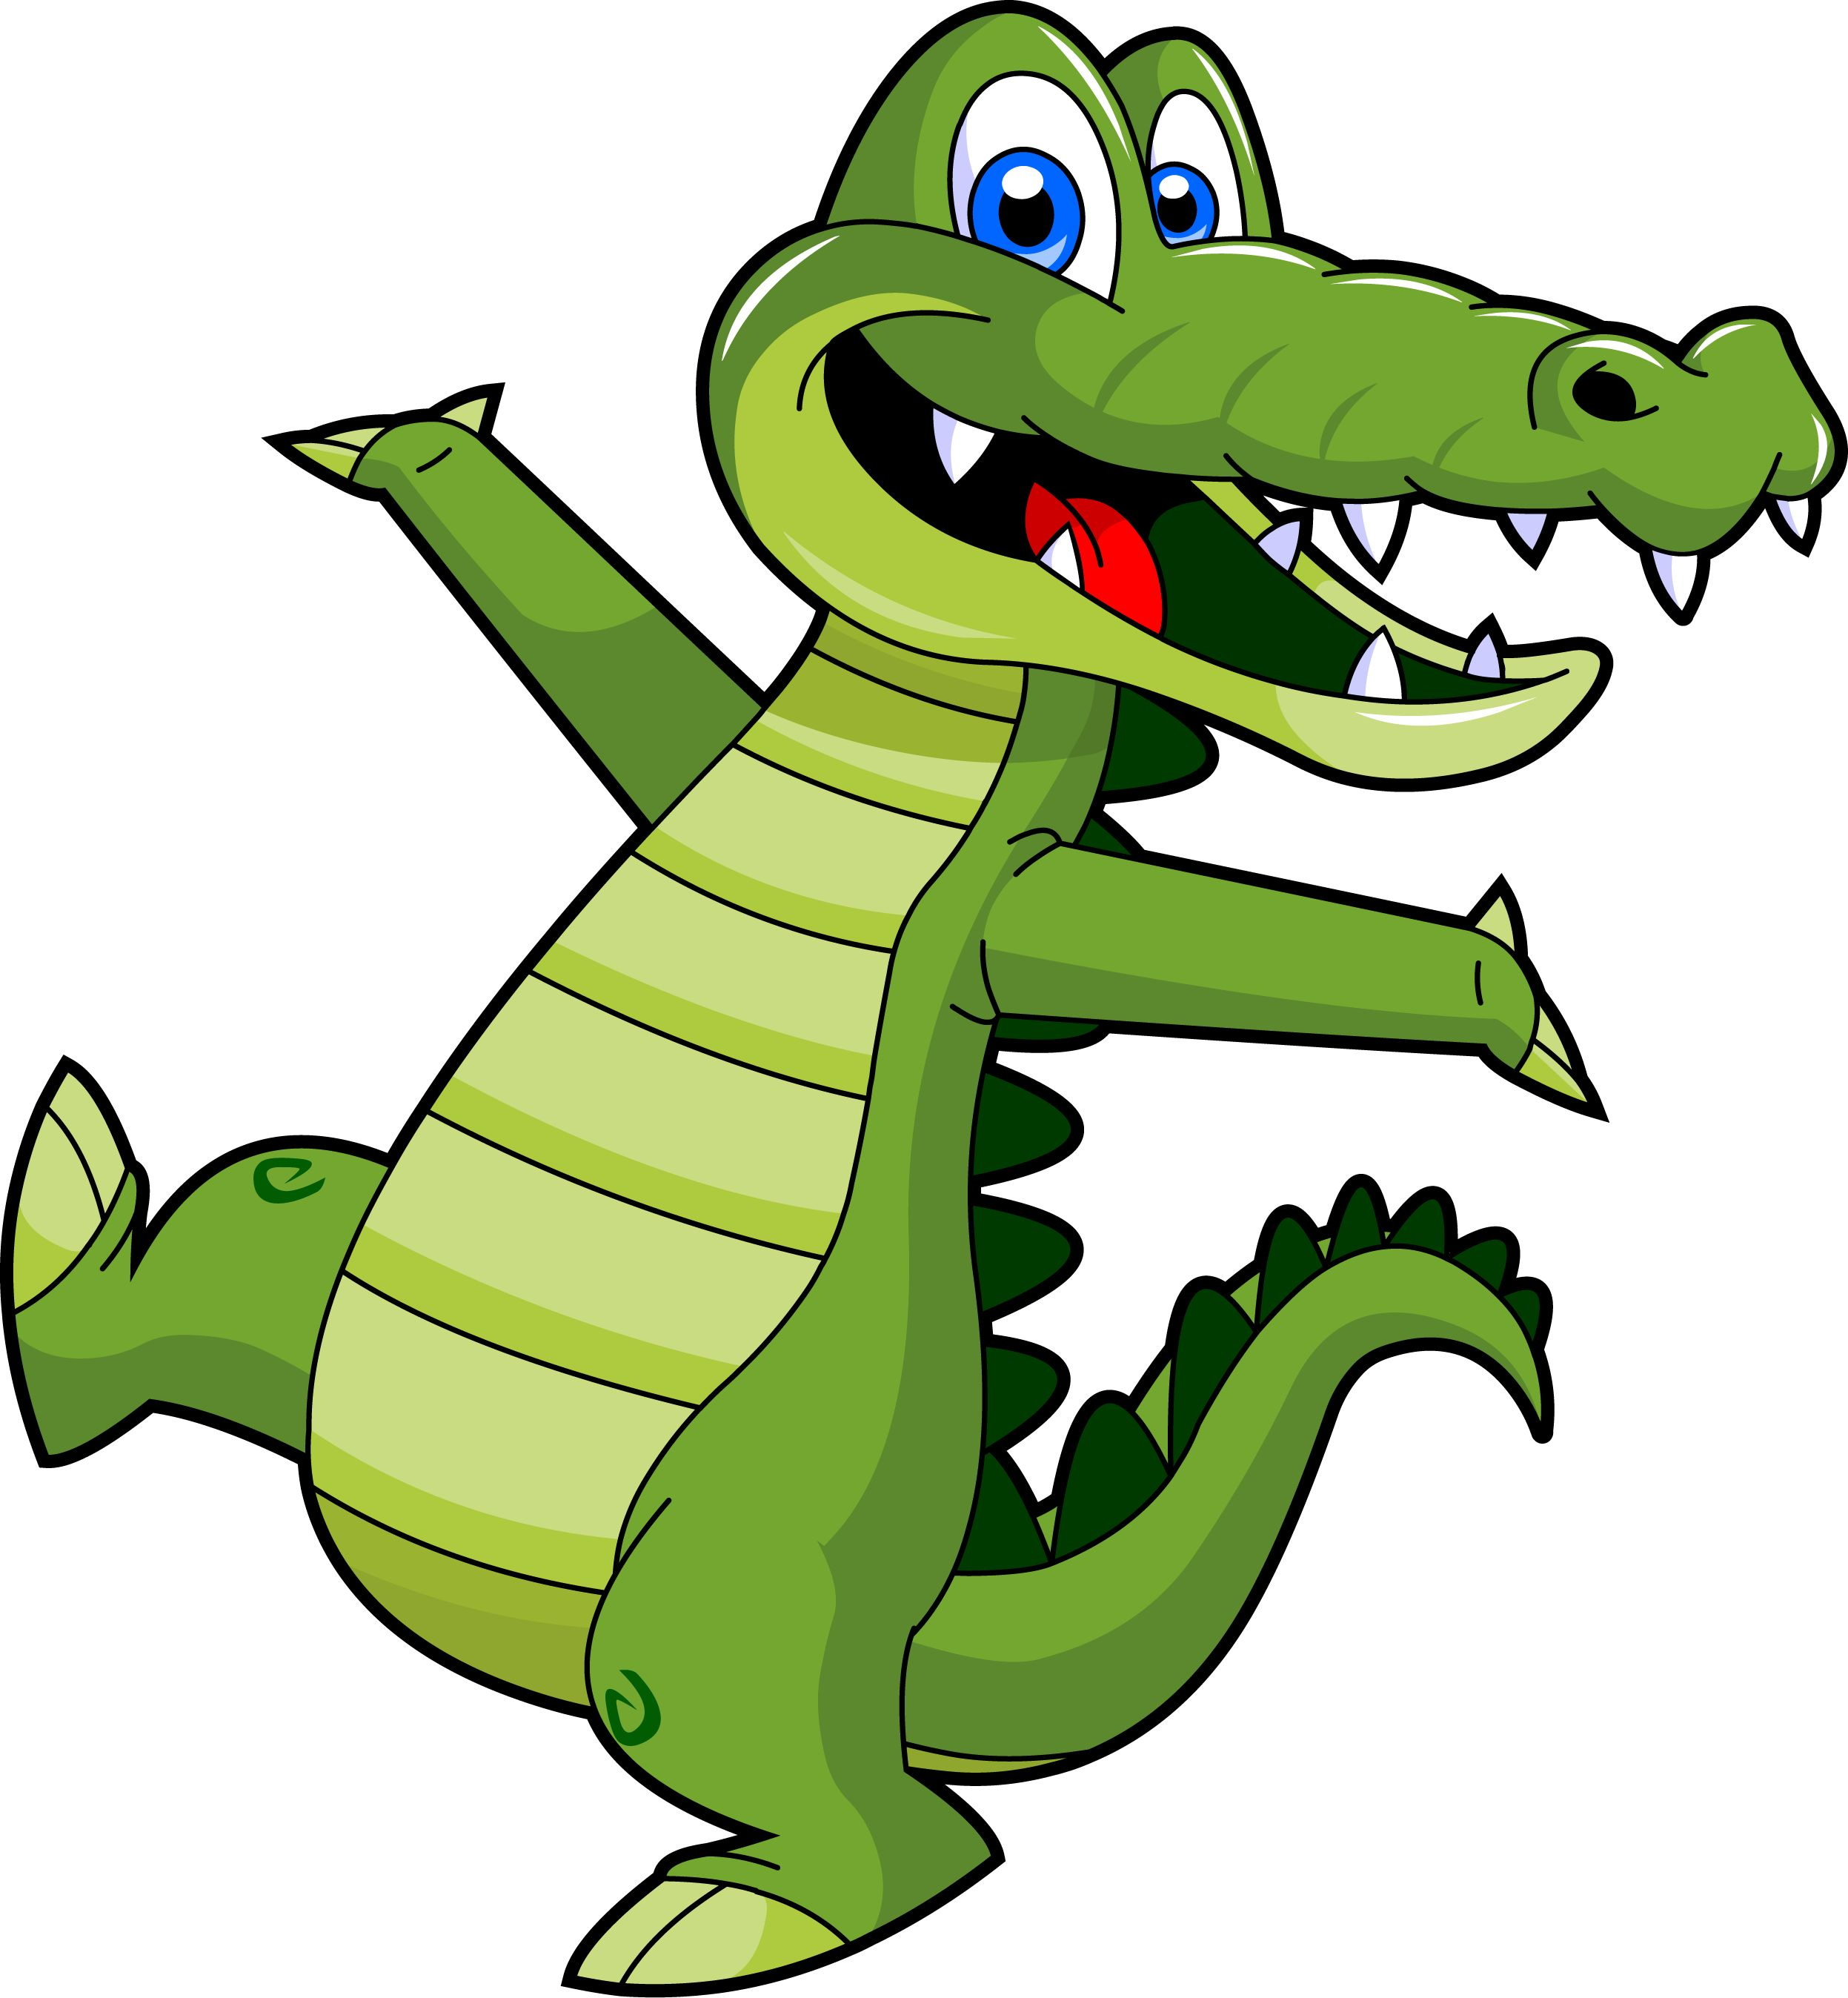 Sick clipart germ Clipart images baby 2 alligator